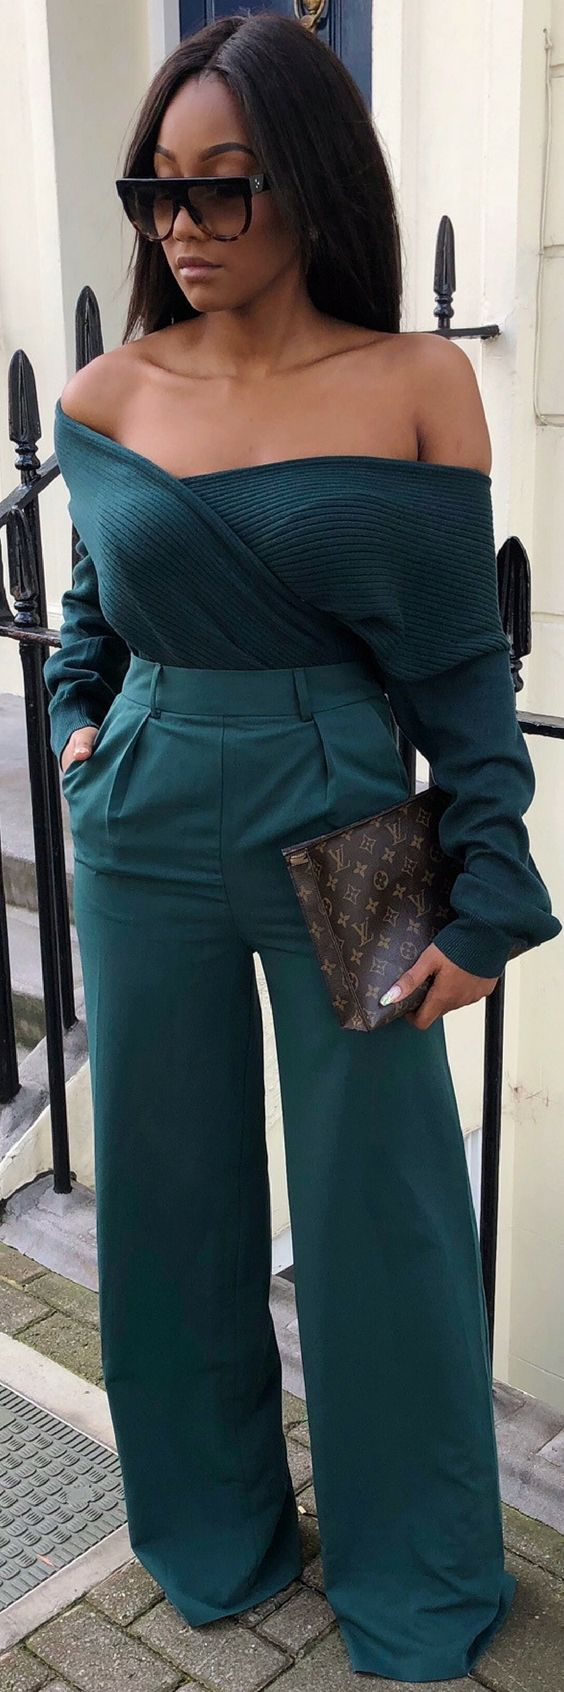 1 Stunning Formula Of How To Wear Fearless Green They'll Love http://ecstasymodels.blog/2017/10/31/1-stunning-formula-wear-fearless-green/